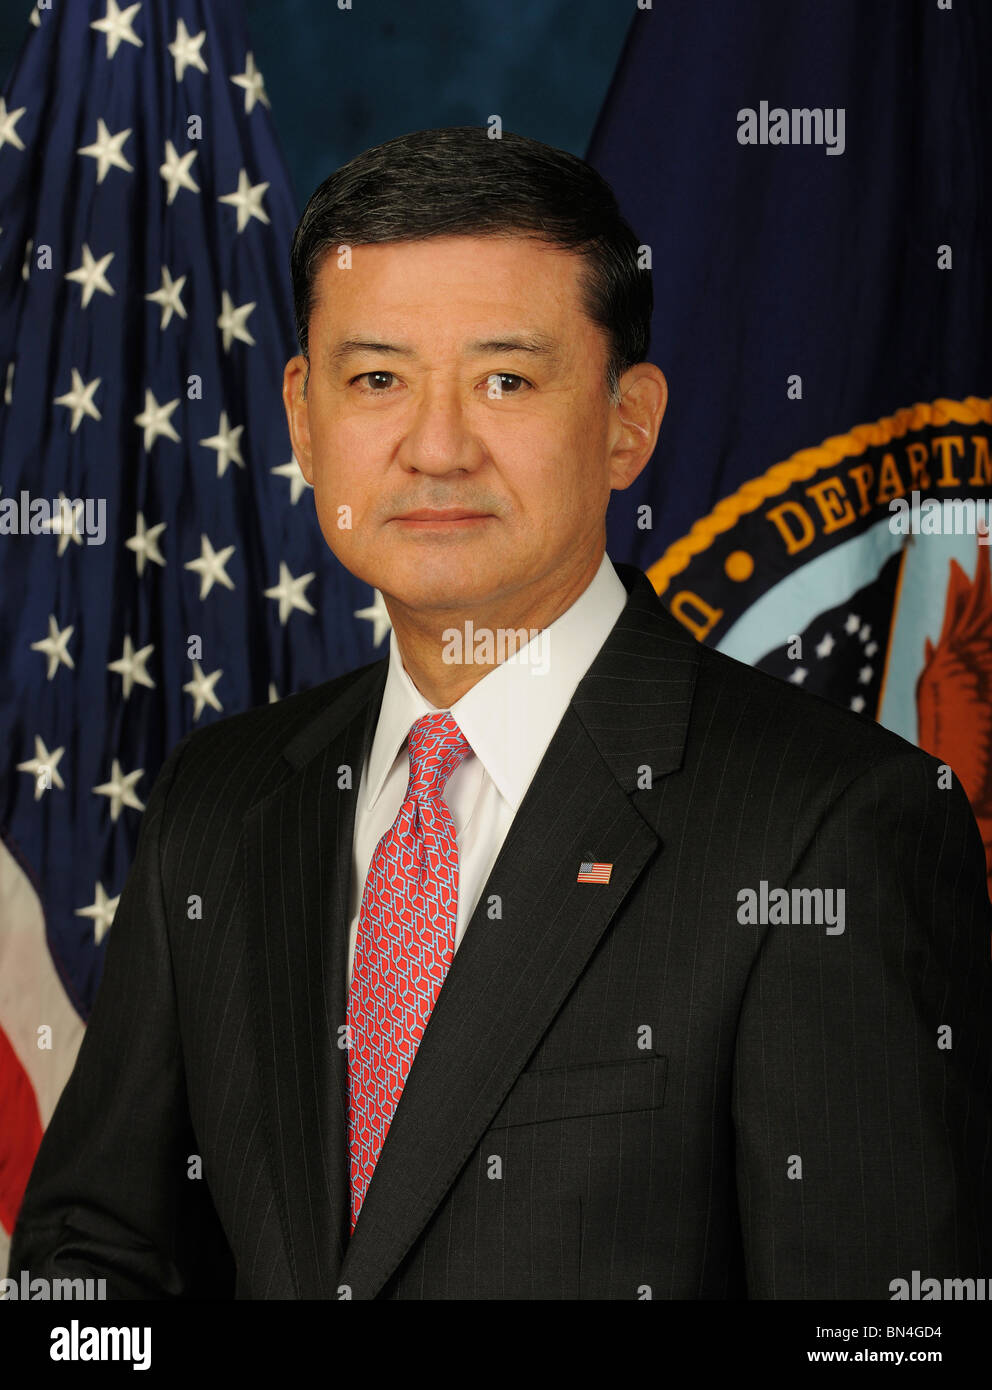 United States Department of Veterans Affairs Secretary  Eric K. Shinseki - Stock Image